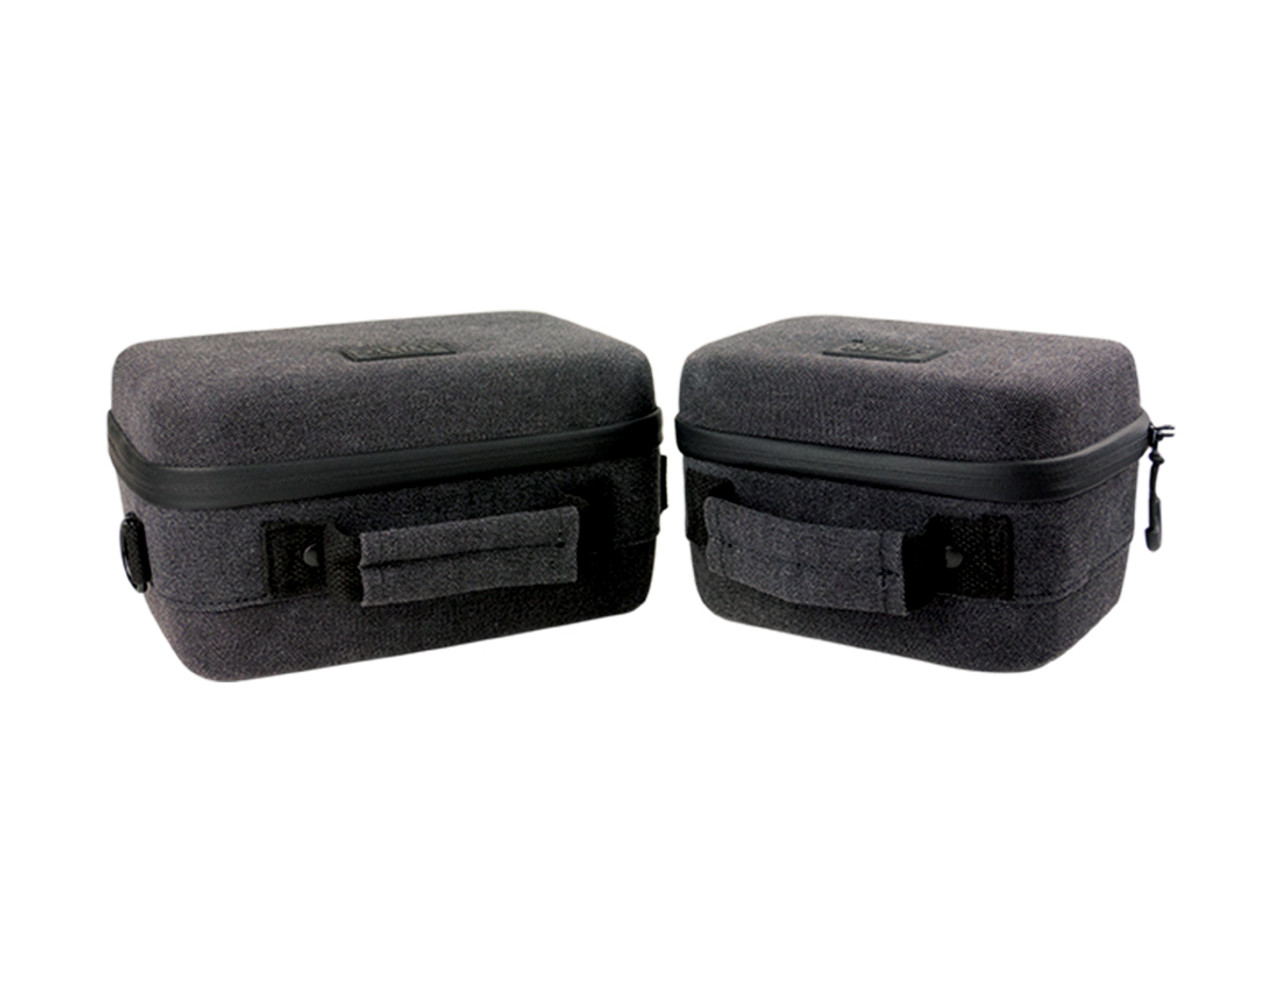 RYOT Carbon Series  Safe Case with SmellSafe & Lockable Technology